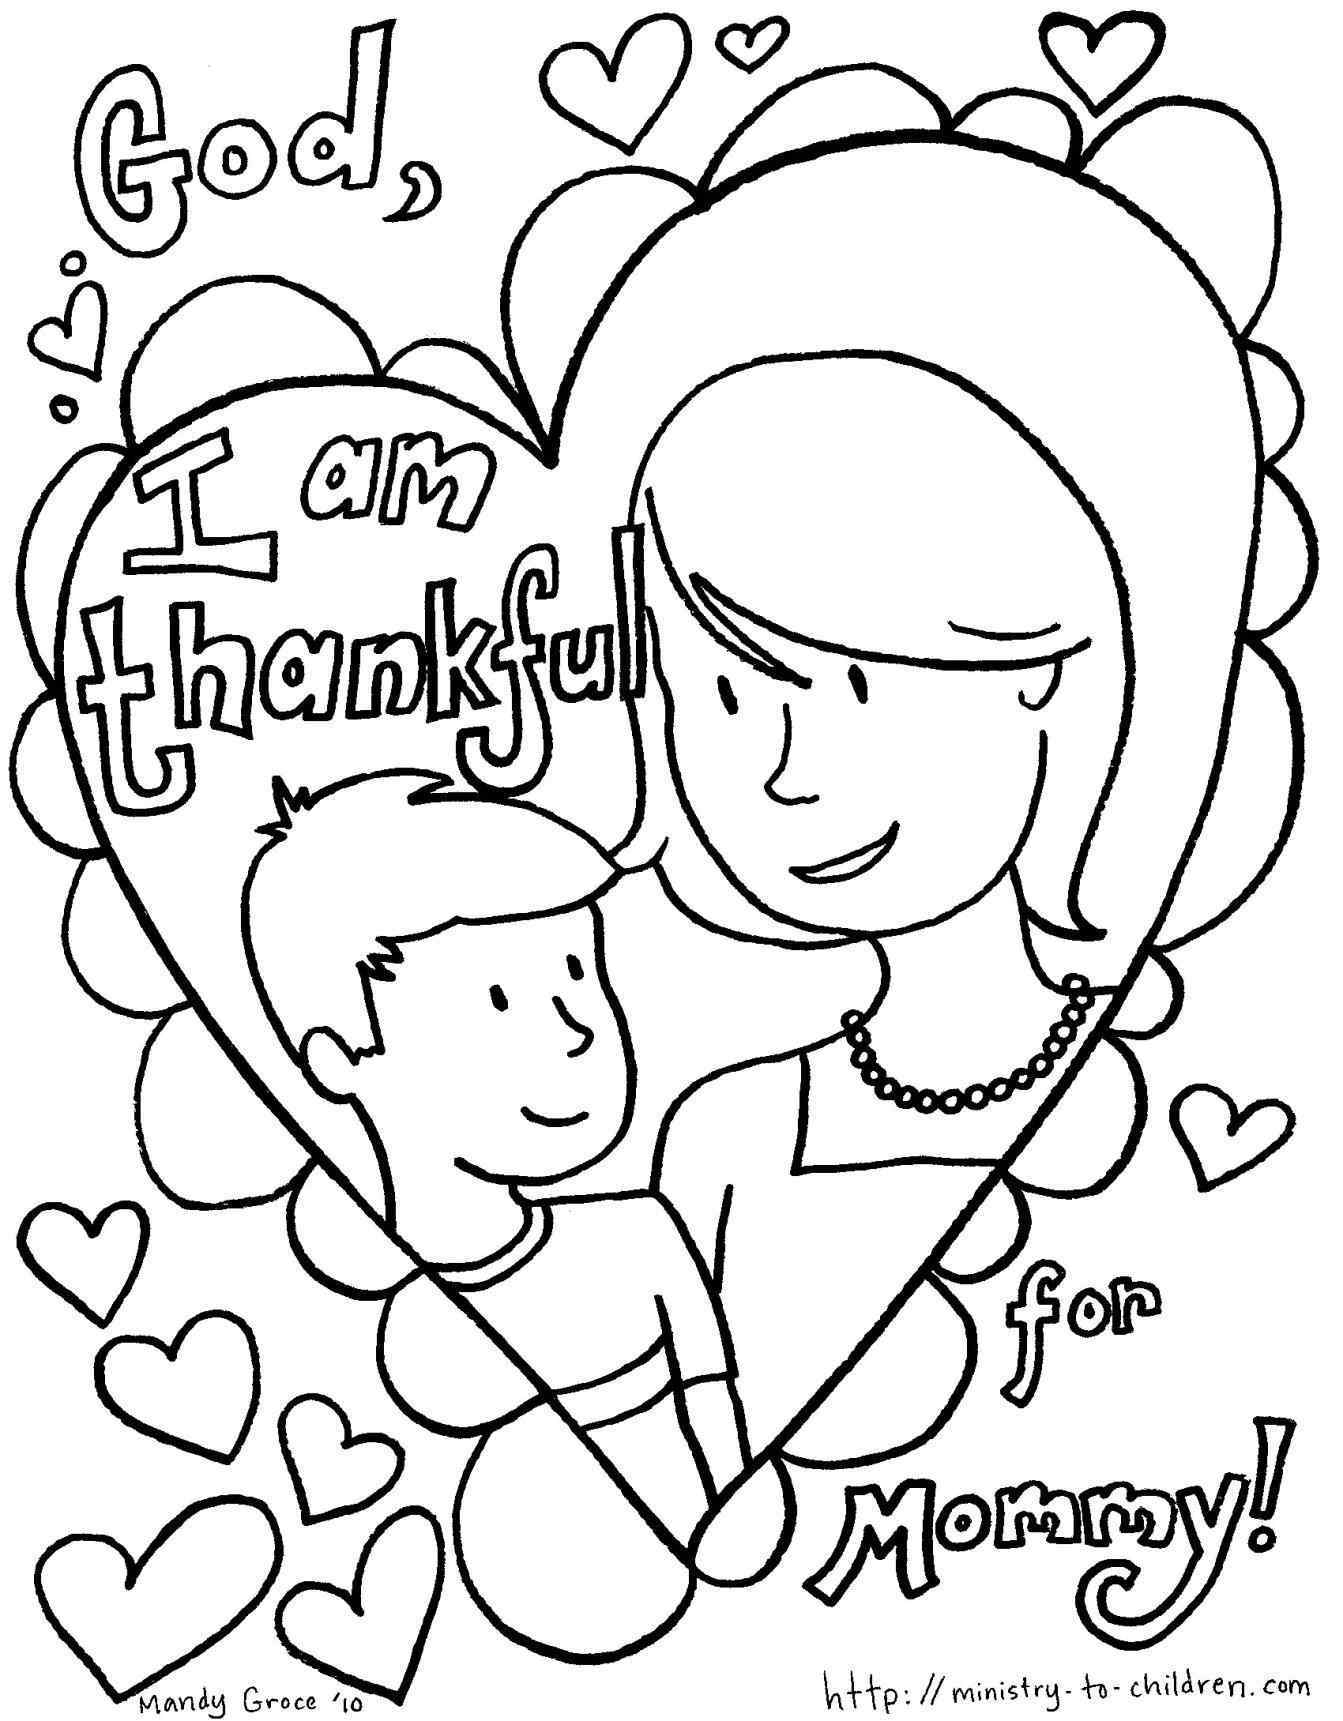 Valentines Day Coloring Pages For Mom